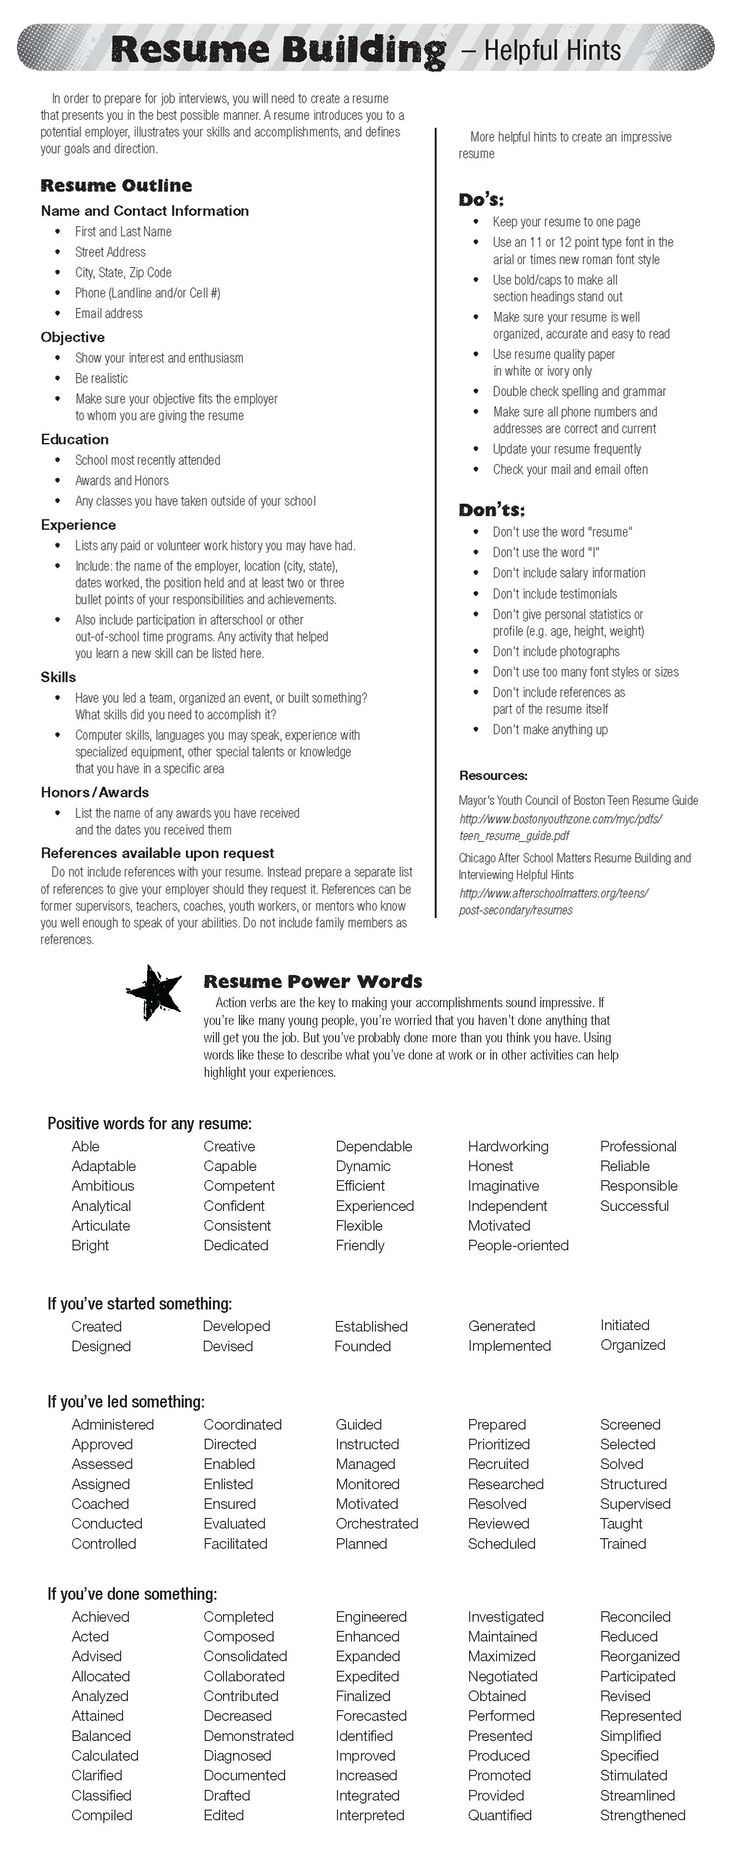 Opposenewapstandardsus  Winning  Ideas About Resume On Pinterest  Cv Format Resume Cv And  With Exciting  Ideas About Resume On Pinterest  Cv Format Resume Cv And Resume Templates With Amusing Things To Put In A Resume Also Nurse Assistant Resume In Addition About Me Resume And Qa Engineer Resume As Well As What To Put In Resume Additionally Crna Resume From Pinterestcom With Opposenewapstandardsus  Exciting  Ideas About Resume On Pinterest  Cv Format Resume Cv And  With Amusing  Ideas About Resume On Pinterest  Cv Format Resume Cv And Resume Templates And Winning Things To Put In A Resume Also Nurse Assistant Resume In Addition About Me Resume From Pinterestcom